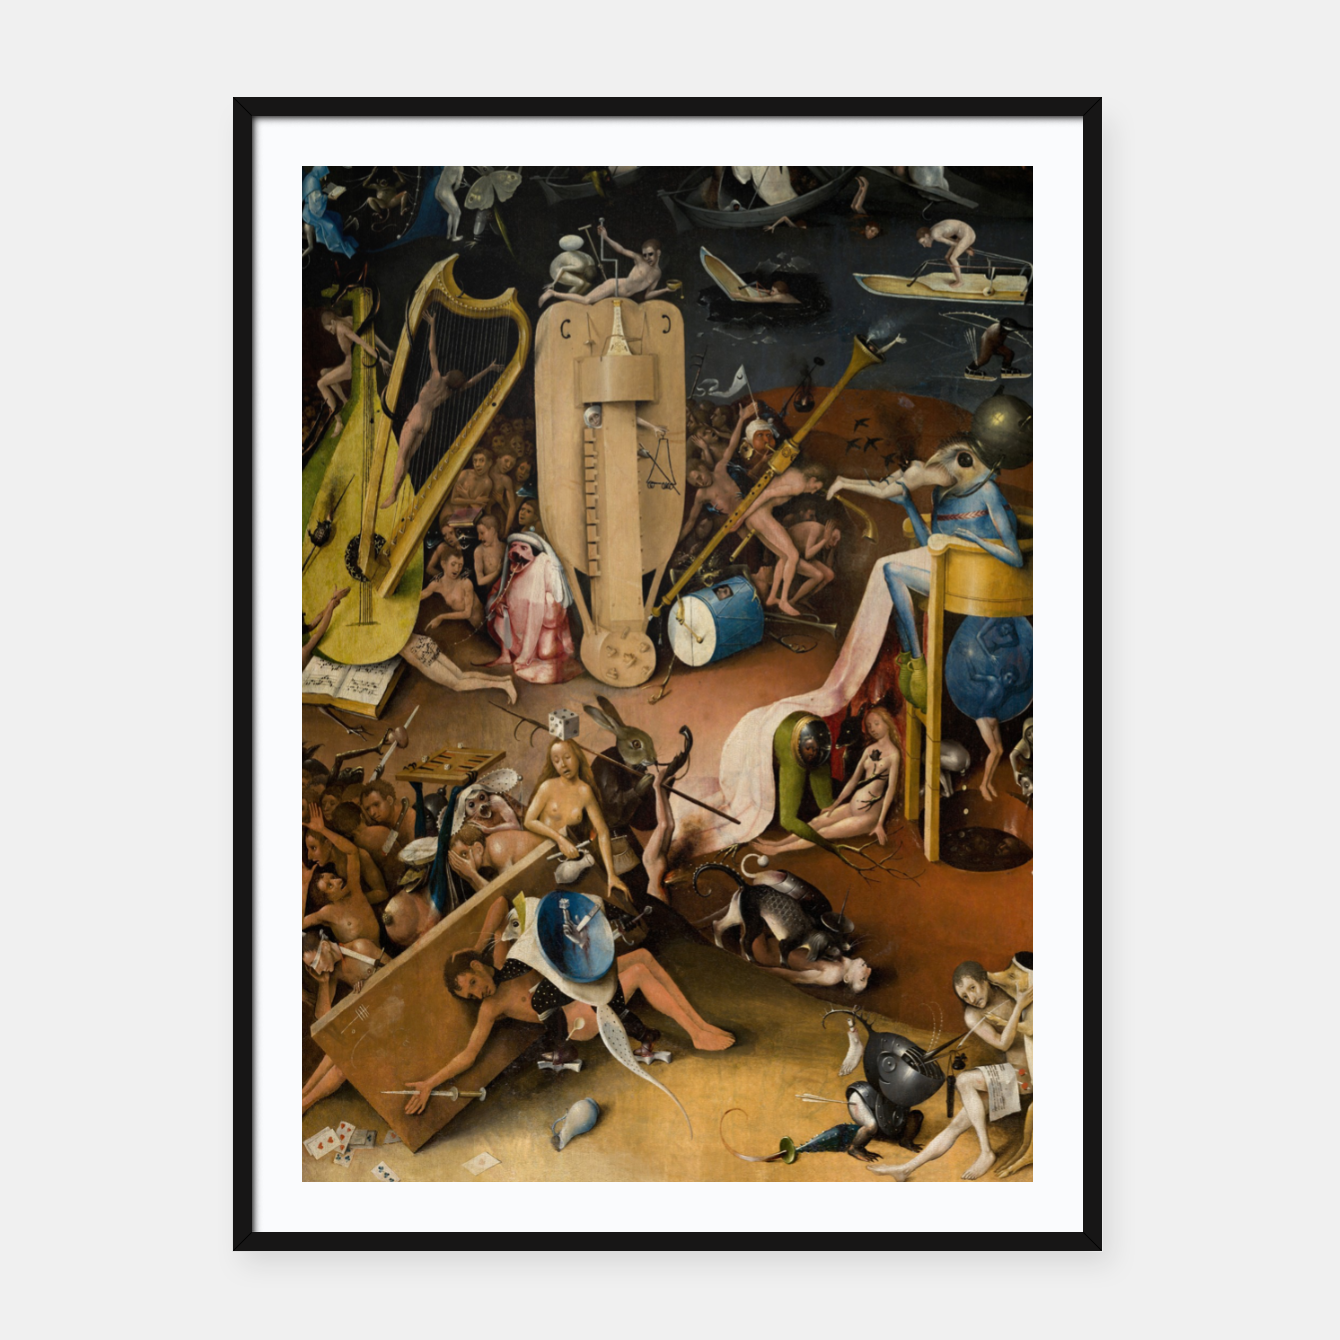 Zdjęcie Fashion and decor items from Hieronymus Bosch painting of Hell from the triptych Garden of Earthly Delights Framed poster - Live Heroes